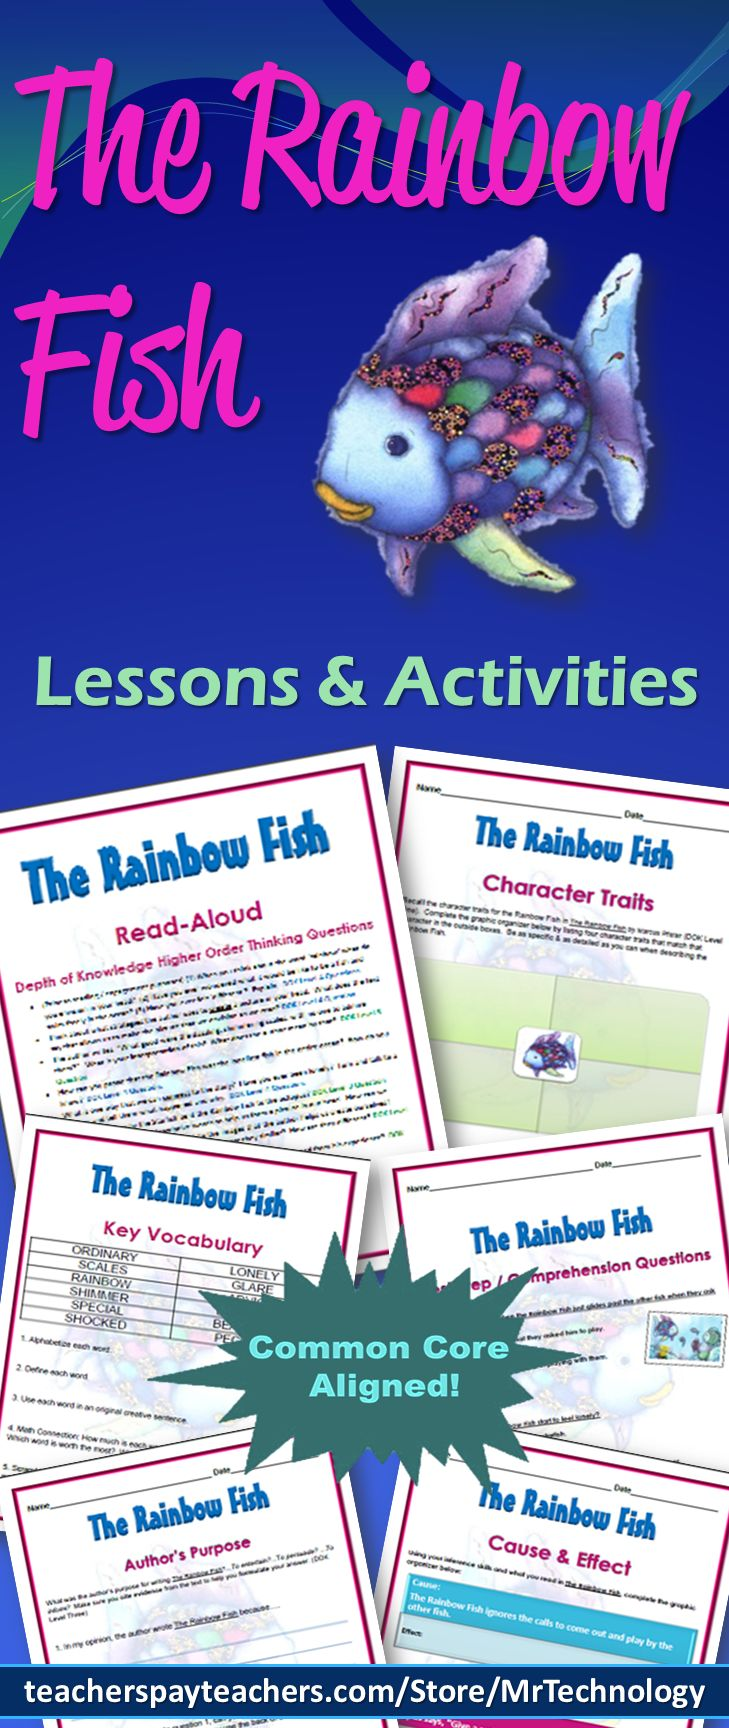 The Rainbow Fish is the most beautiful fish in the ocean. But he is too proud and becomes very lonely when none of the other fish want to be his friend, that is, until he gets advice from a wise octopus to give away some of his most prized possessions.  This 24-page packet includes: •	Depth of Knowledge (DOK) Higher Order Thinking Questions to use during your read-aloud •	Vocabulary Words •	A Vocabulary Word Search •	Vocabulary Classwork/Homework ideas •	Shared Reading Information